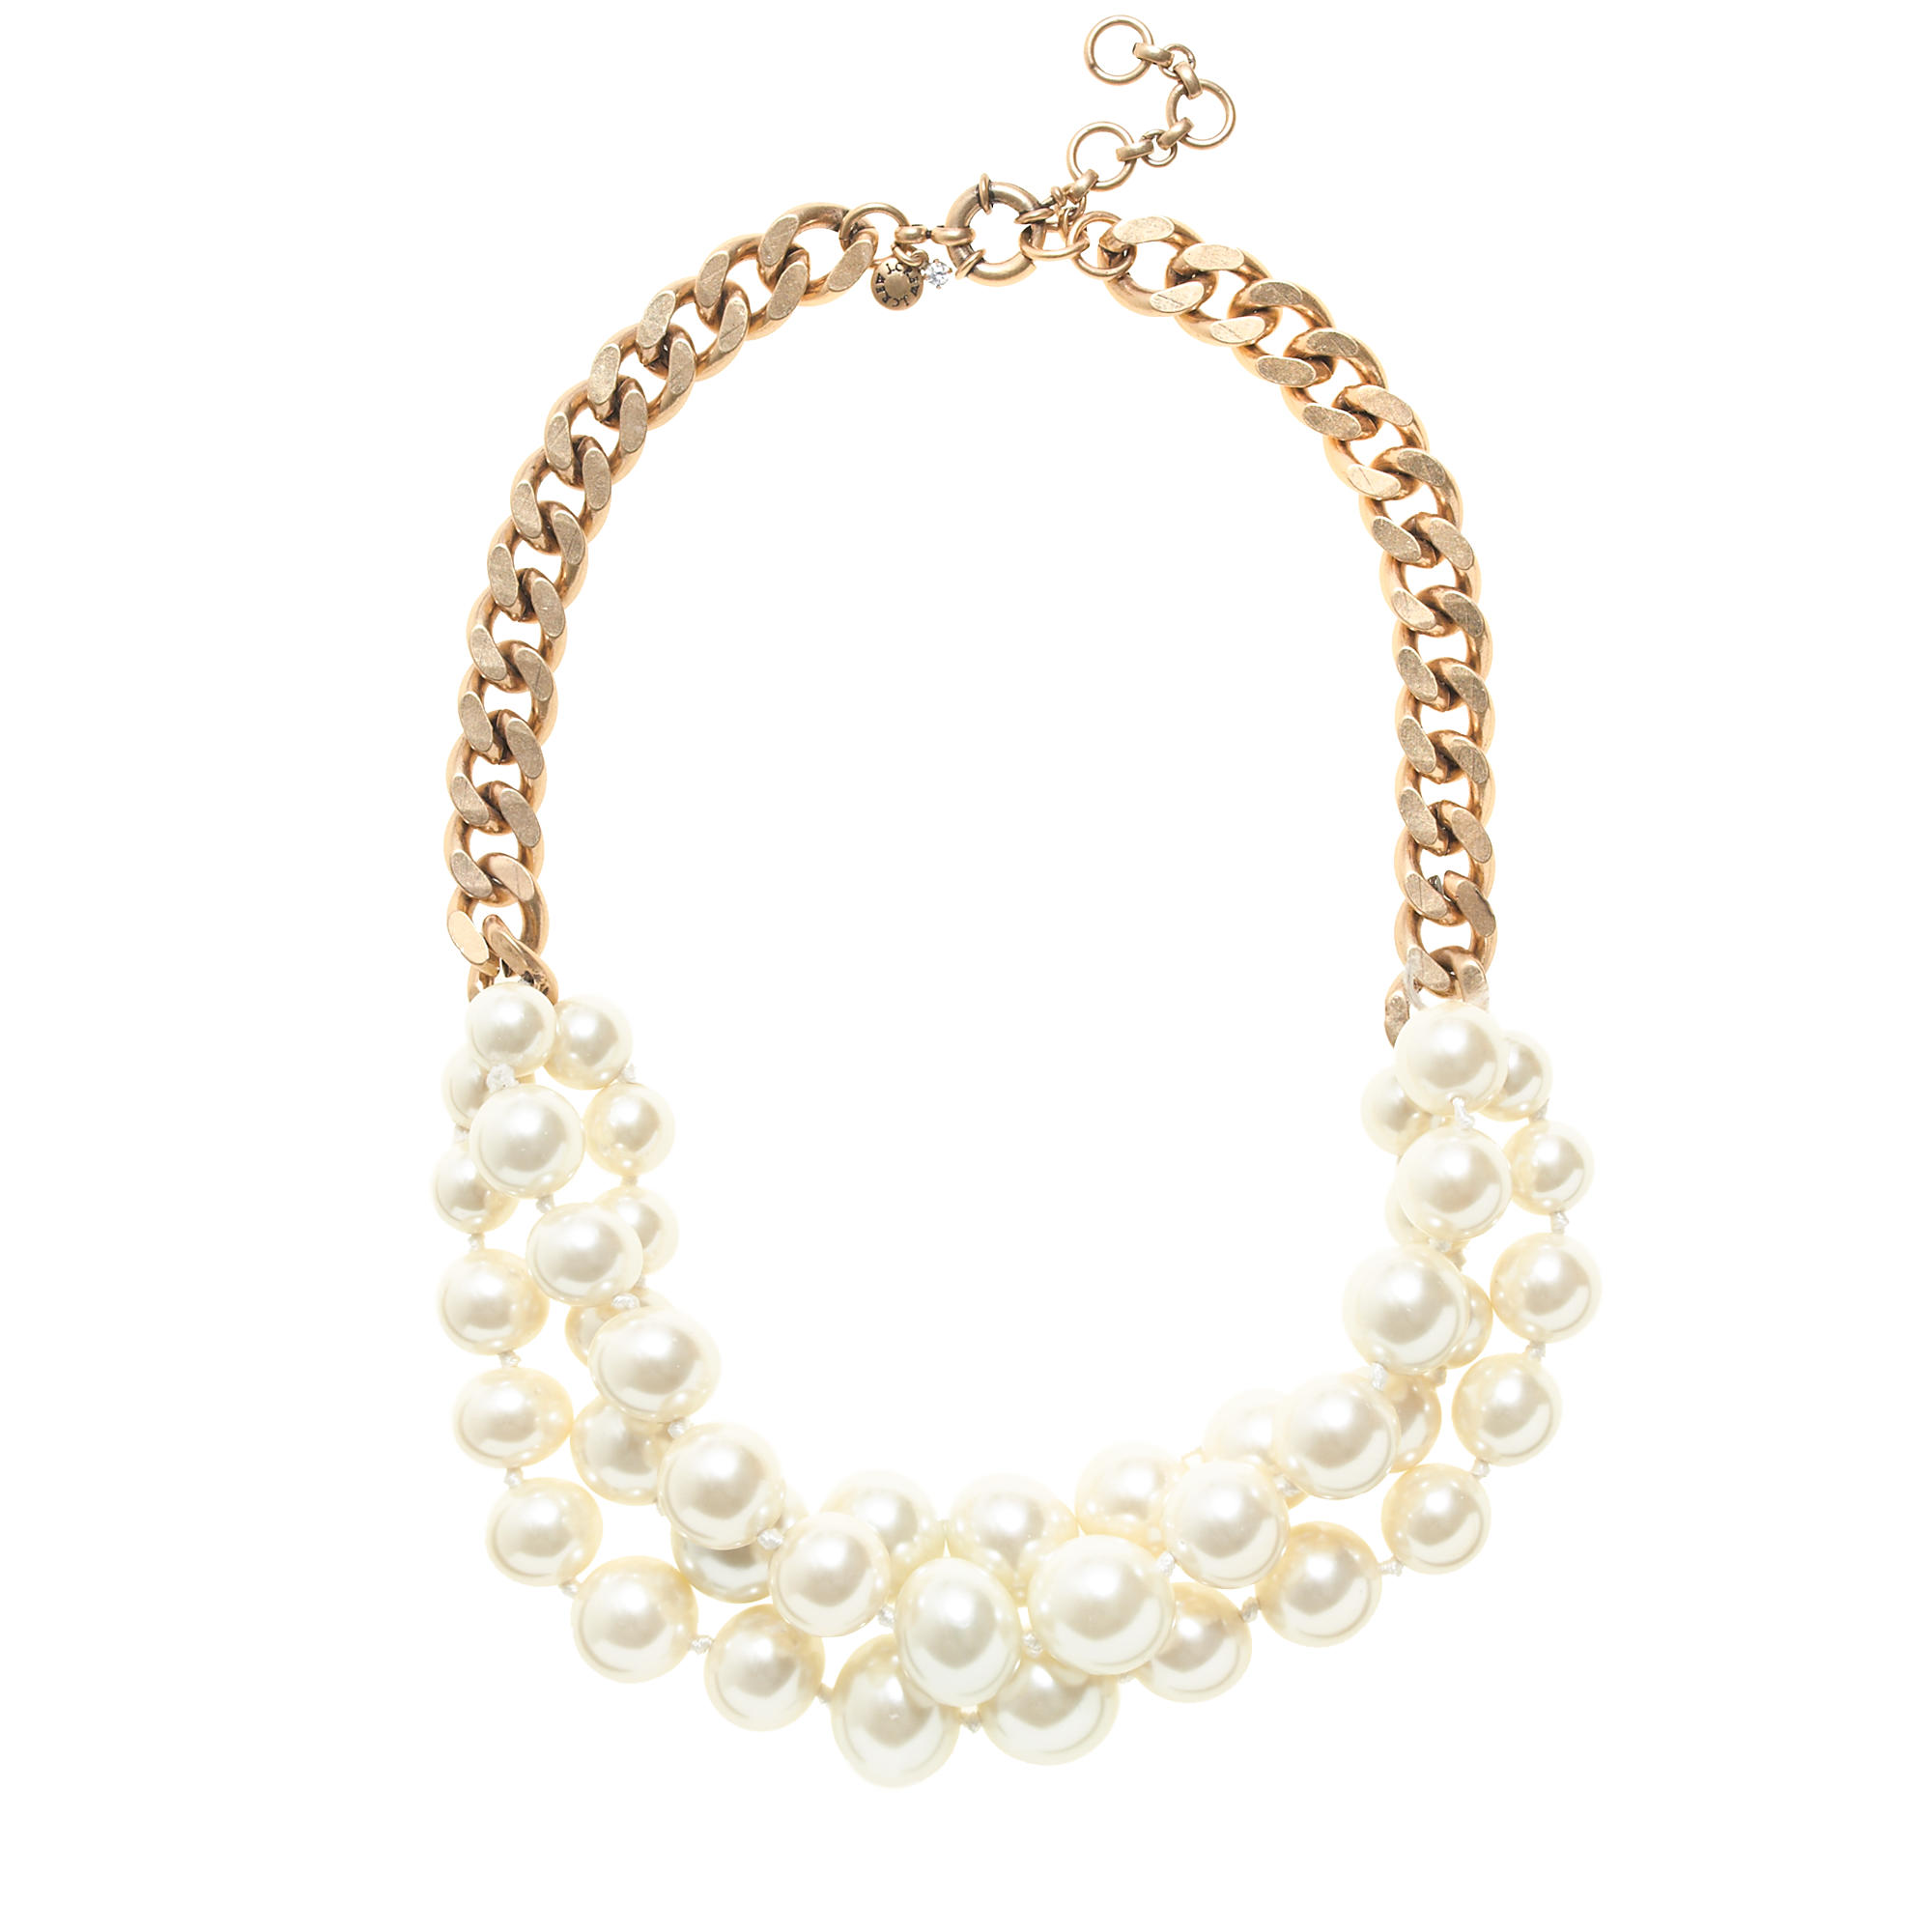 Twisted pearl necklace j crew for J crew jewelry 2015